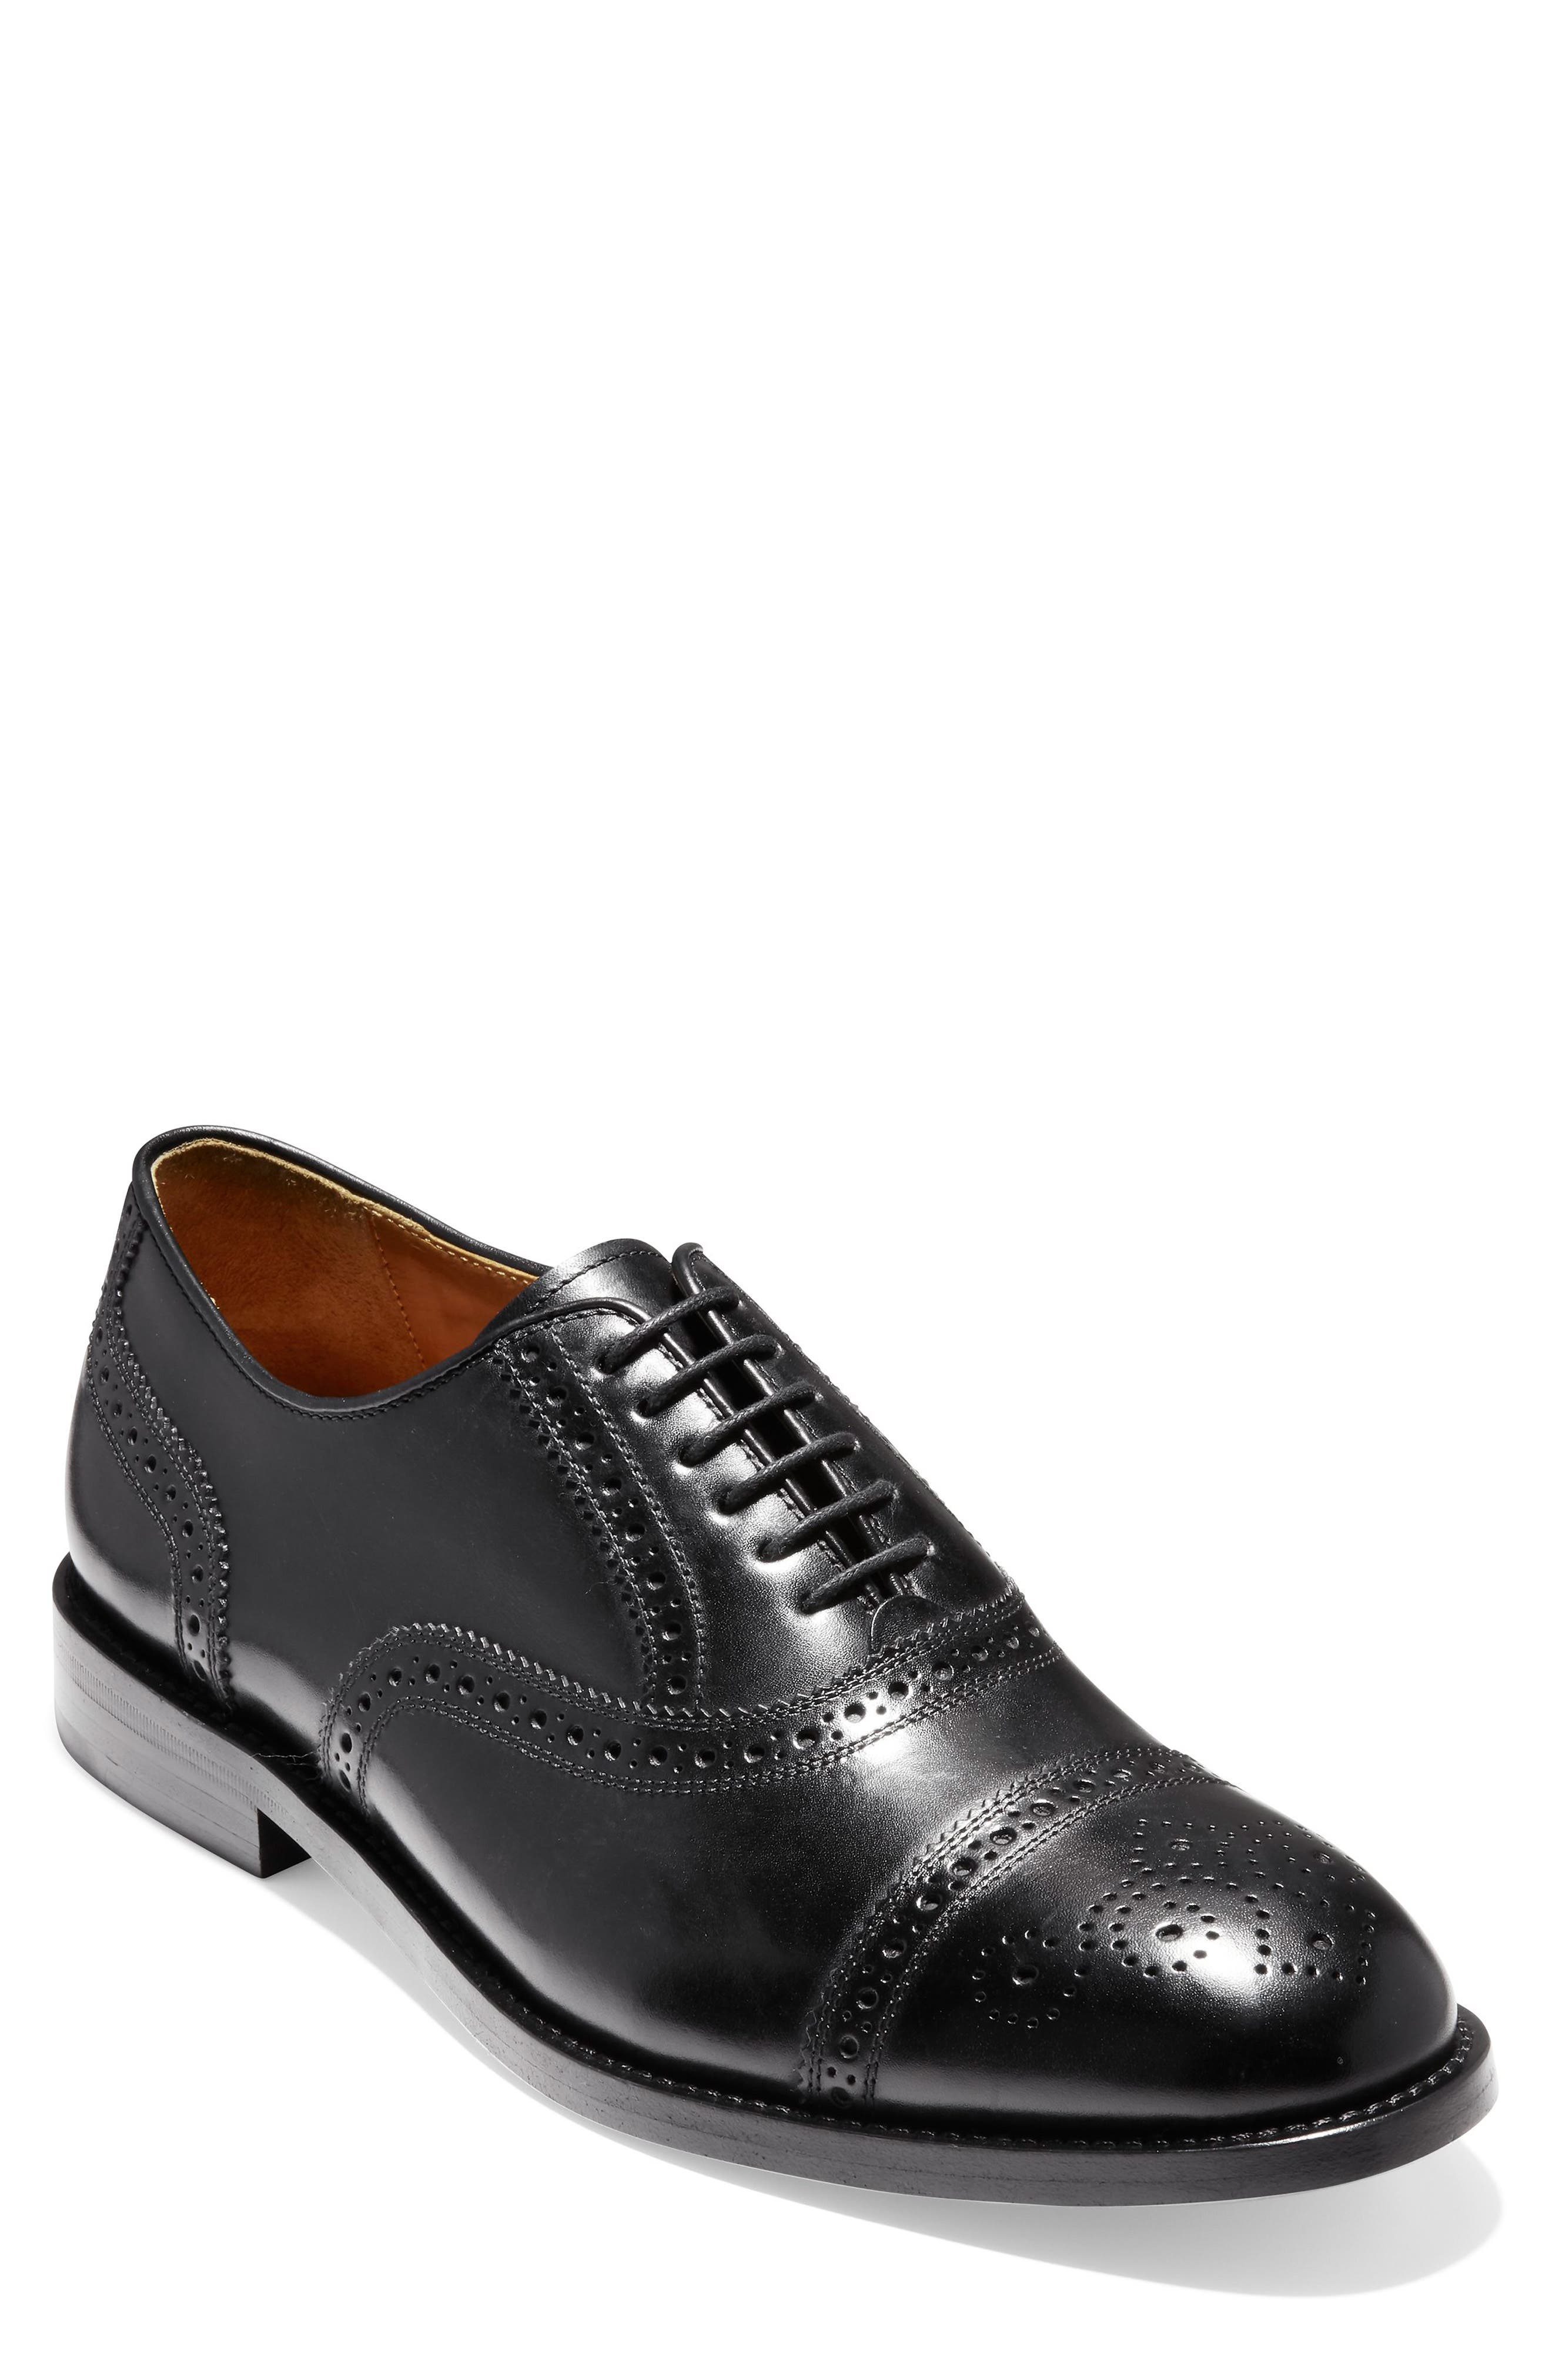 American Classics Kneeland Cap Toe Oxford,                         Main,                         color, BLACK LEATHER